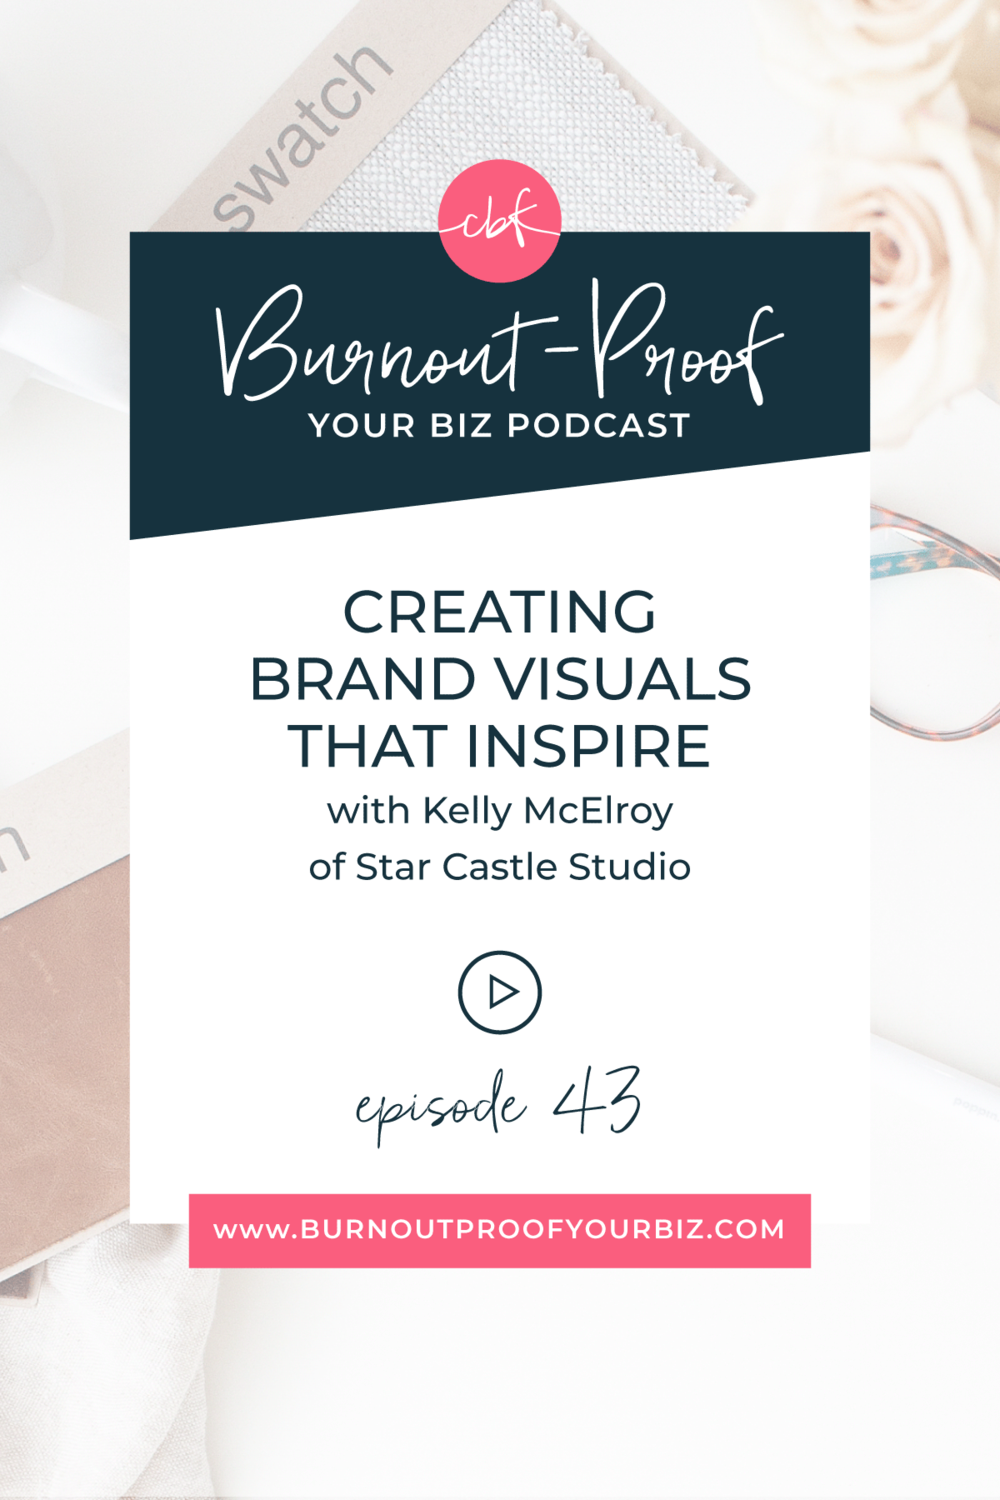 Burnout-Proof Your Biz Podcast with Chelsea B Foster | Episode 043 - Creating Brand Visuals That Inspire with Kelly McElroy of Star Castle Studio | Learn how to run your biz and live your dream life on your own terms without the fear of burnout. ||| Brand Visuals | Branding | Rebranding | Pivoting | Creative Business Branding | When to hire a graphic designer | When to hire a brand expert | Graphic Designer | Brand Expert | Branding Expert | Inspiring Brands | Brands that Inspire